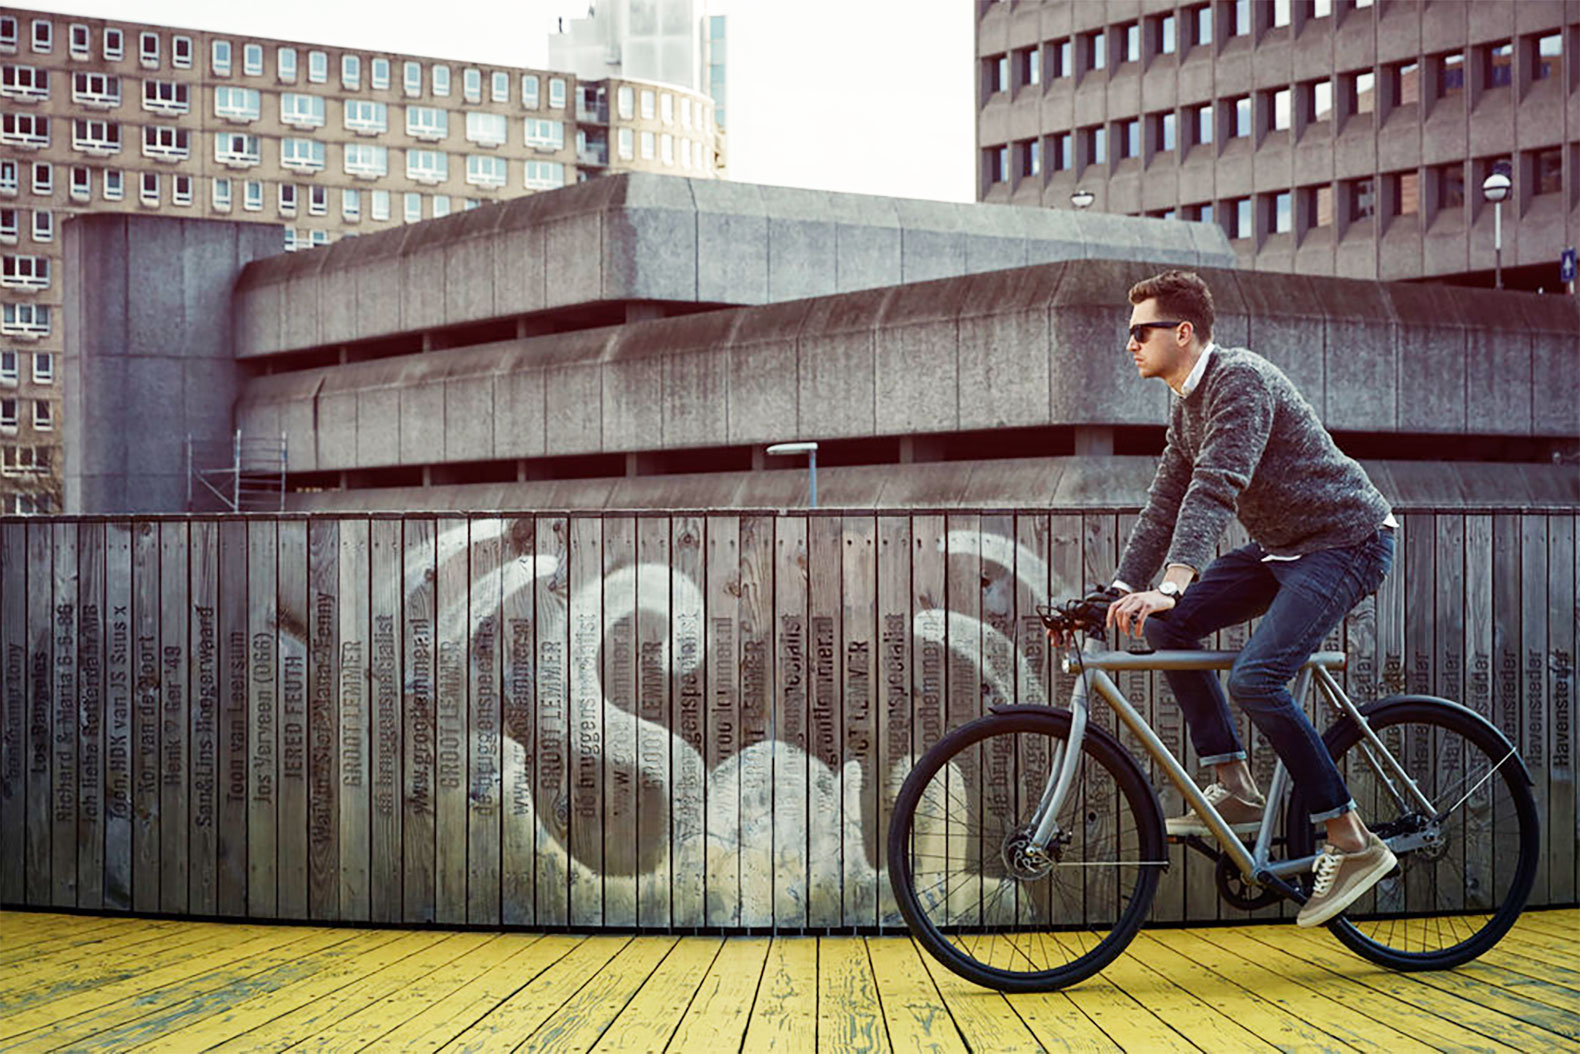 VanMoof launches new SmartBike that